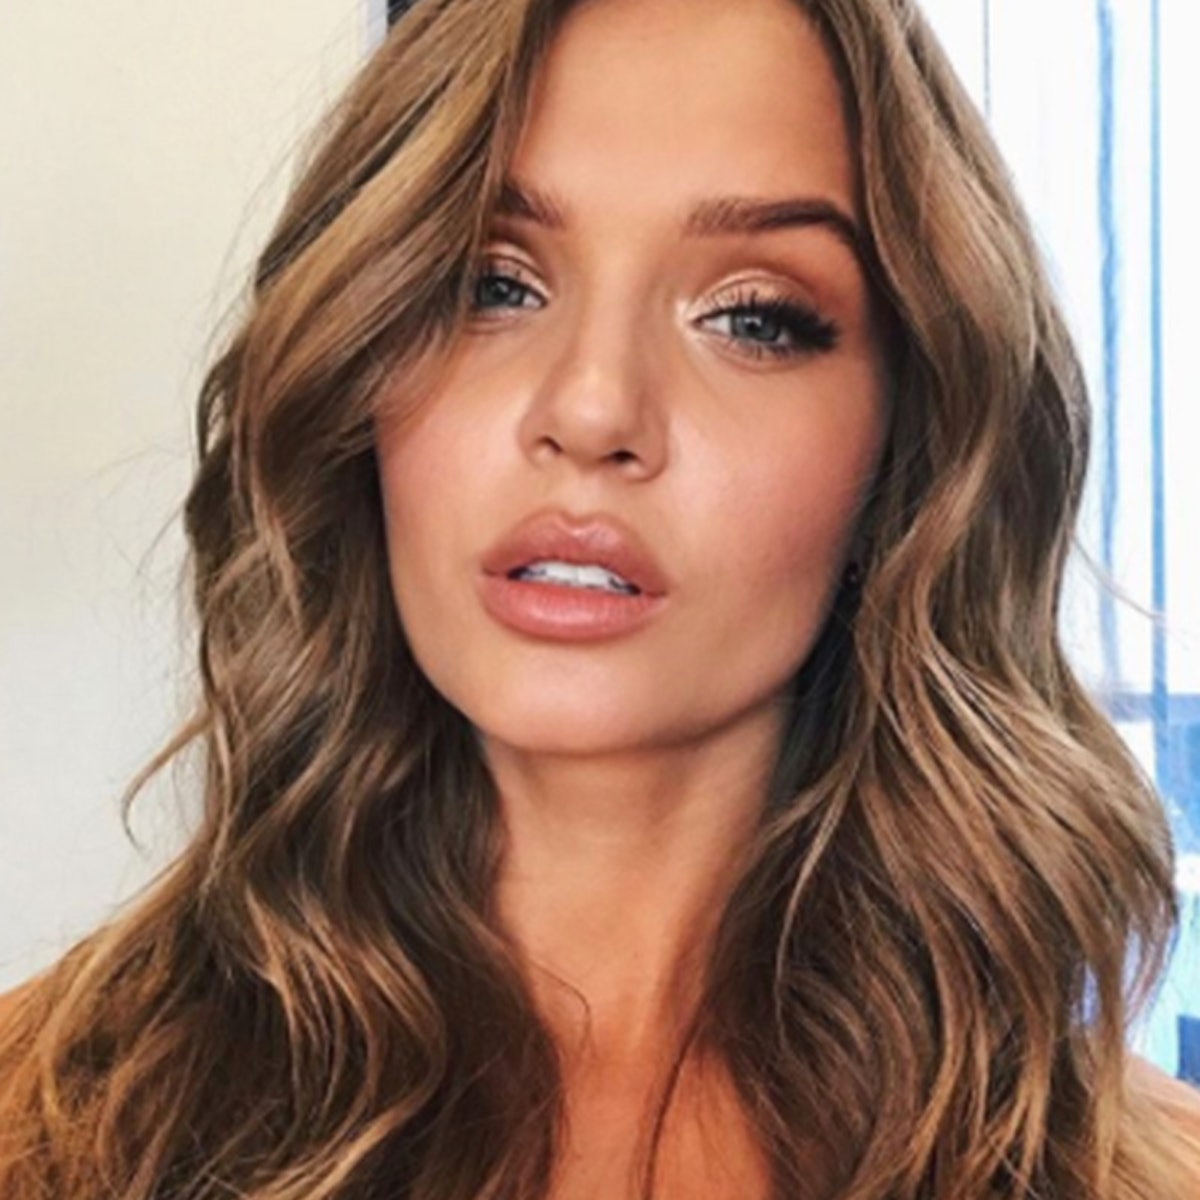 A Victoria's Secret Model Shows Us How To Get Our Lips To Her Level